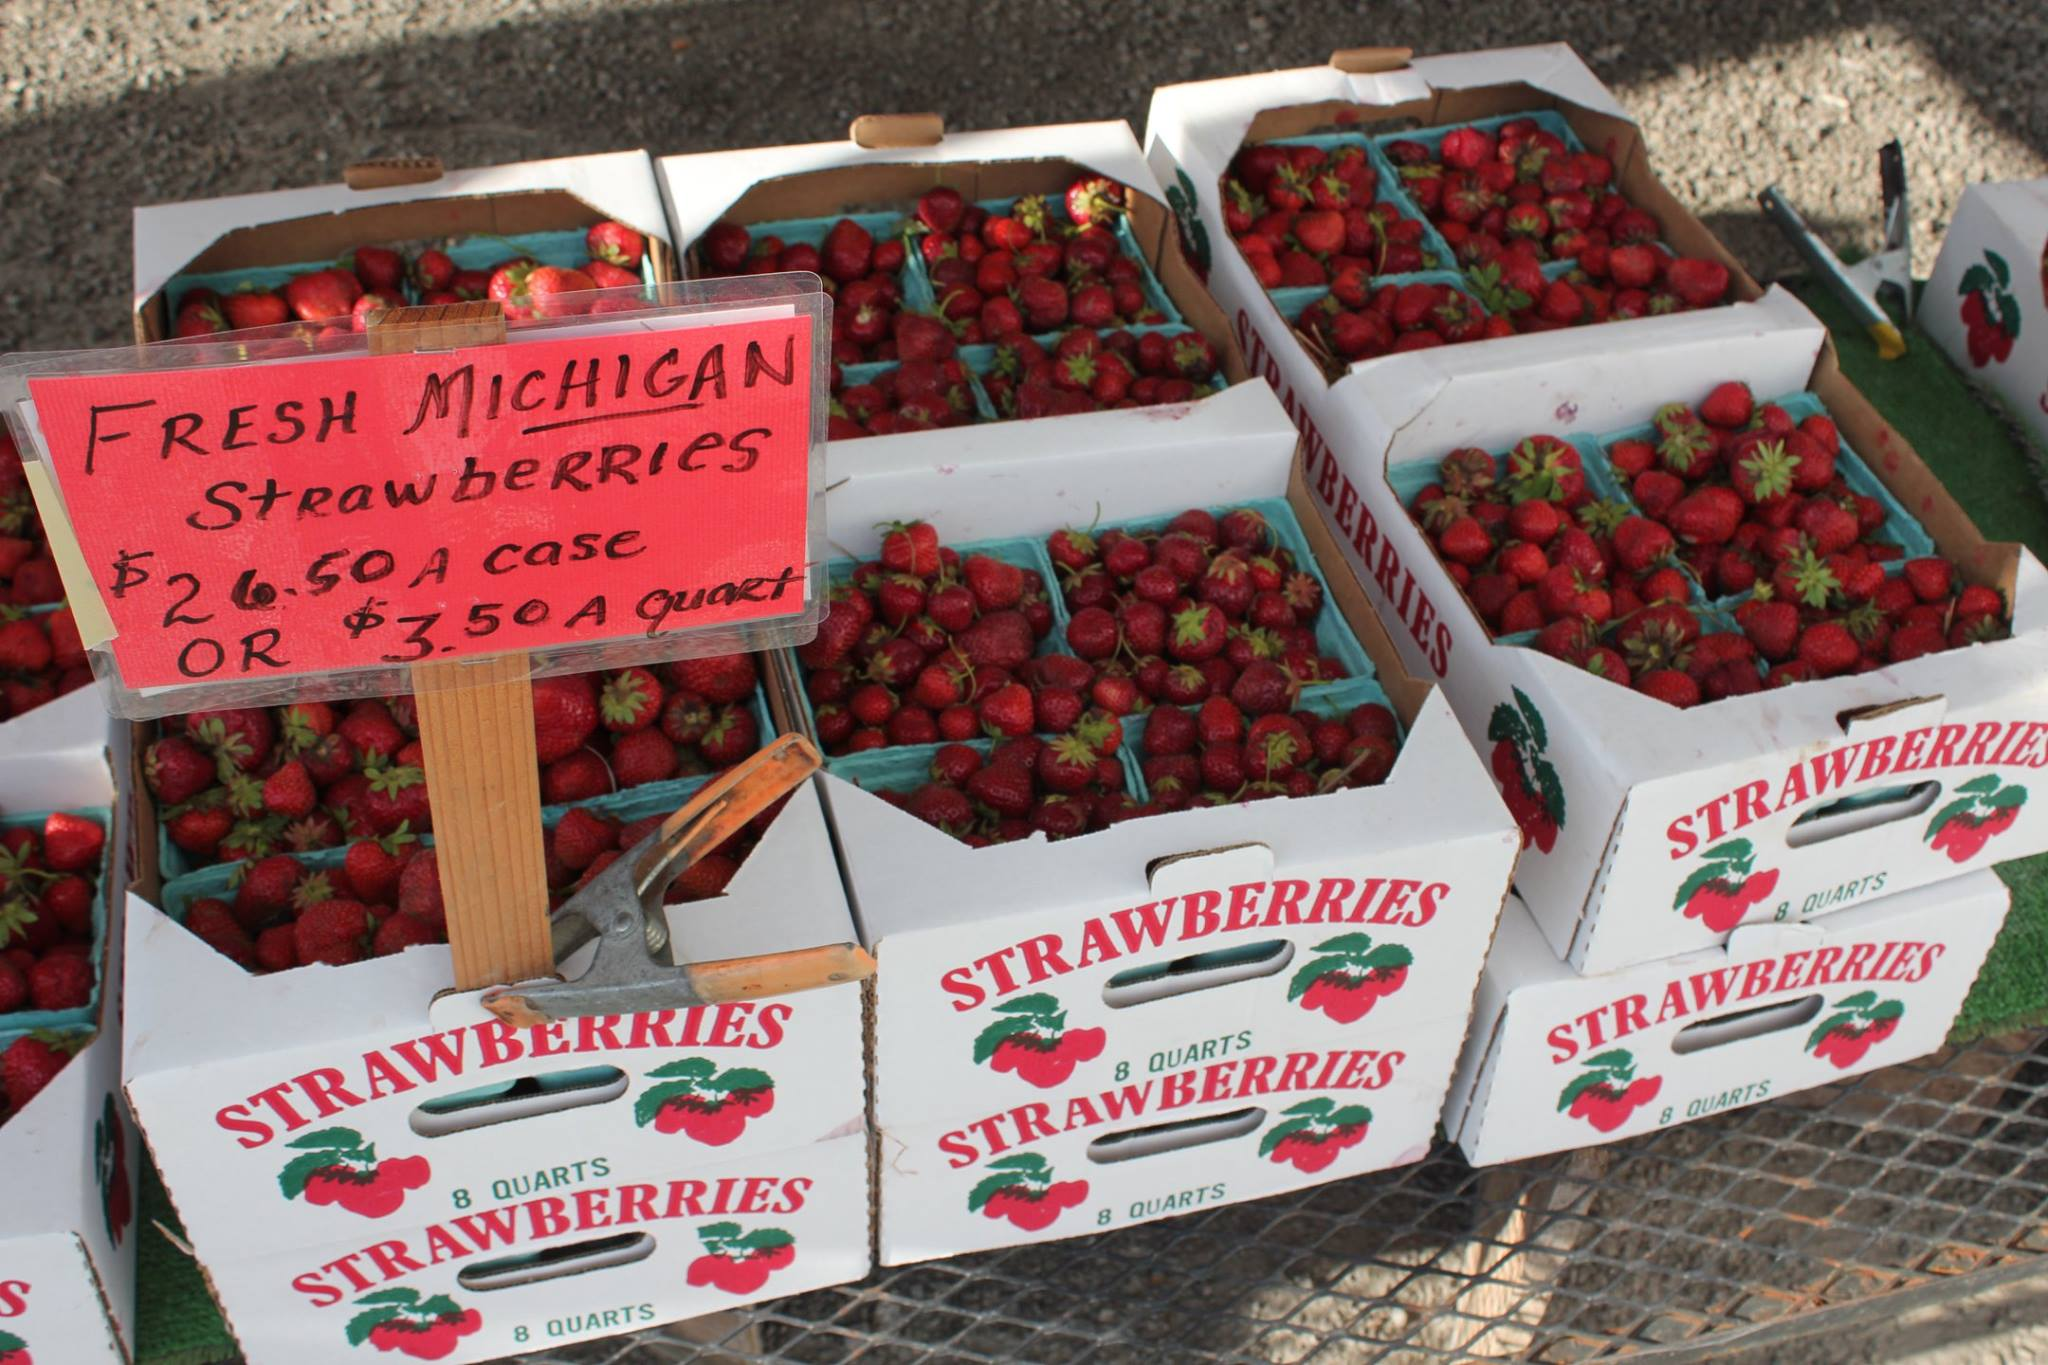 Local produce strawberries at Shipshewana Flea Market